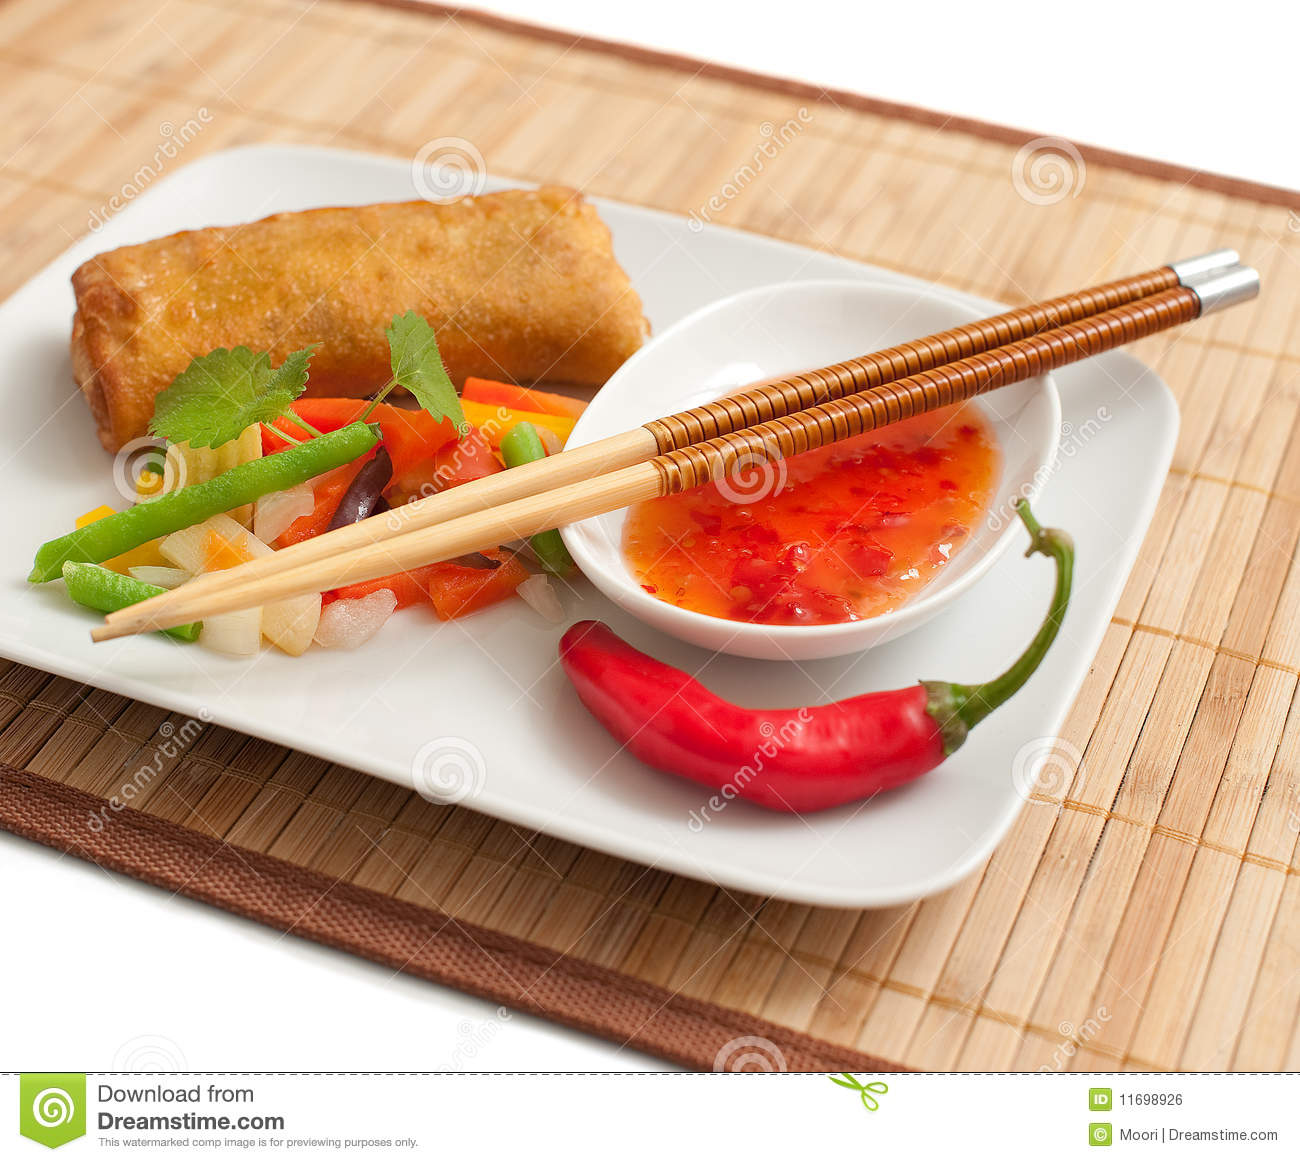 Asian Food Royalty Free Stock Image   Image  11698926